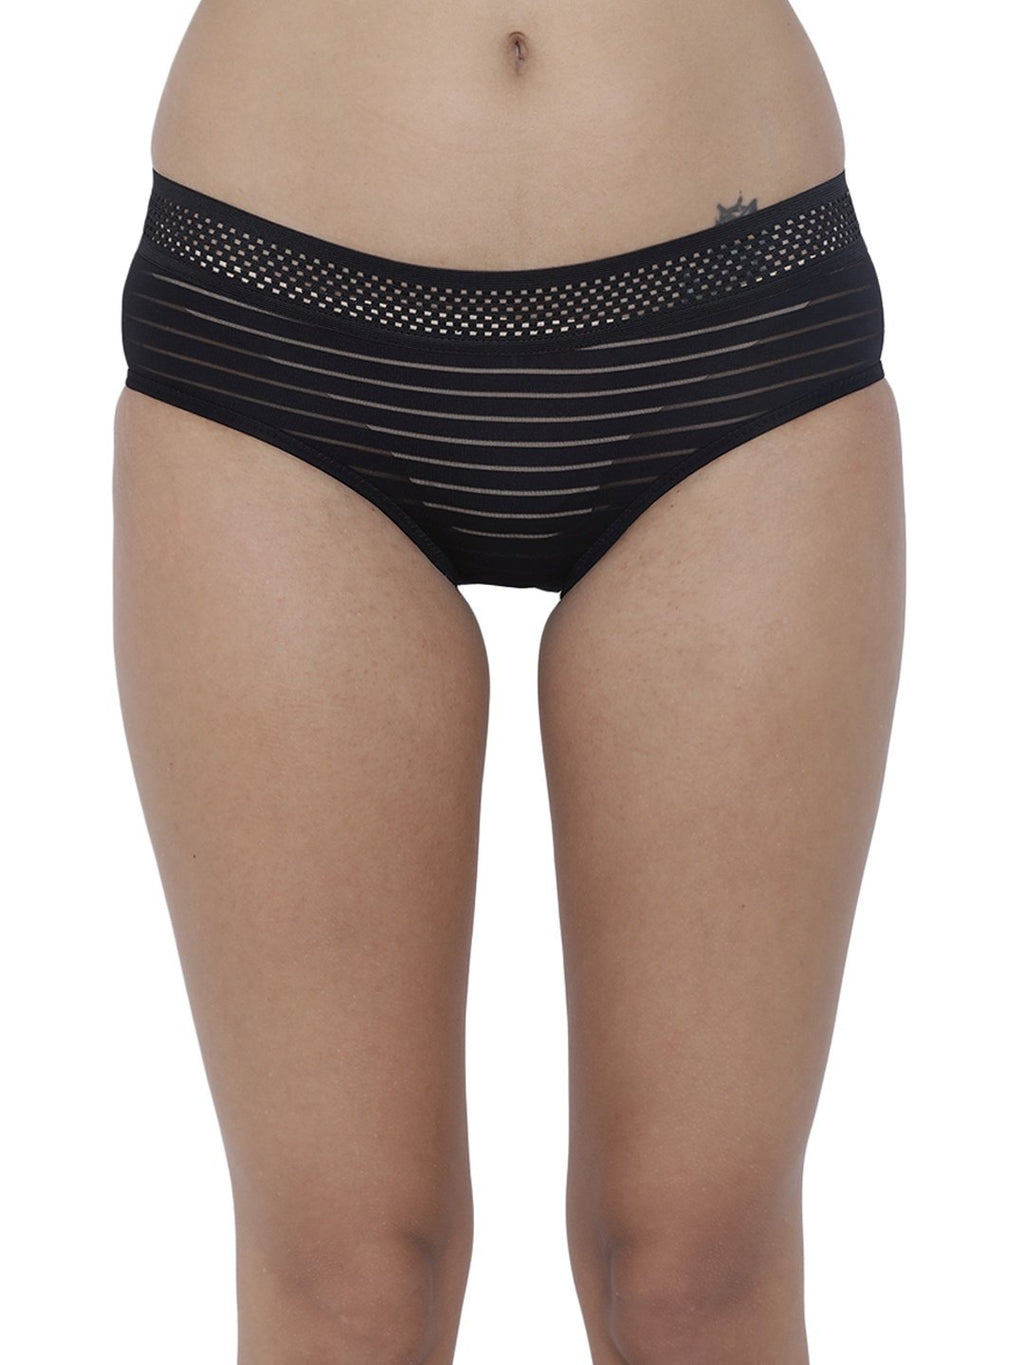 BASIICS Female Black Frio Hot Brief Panty